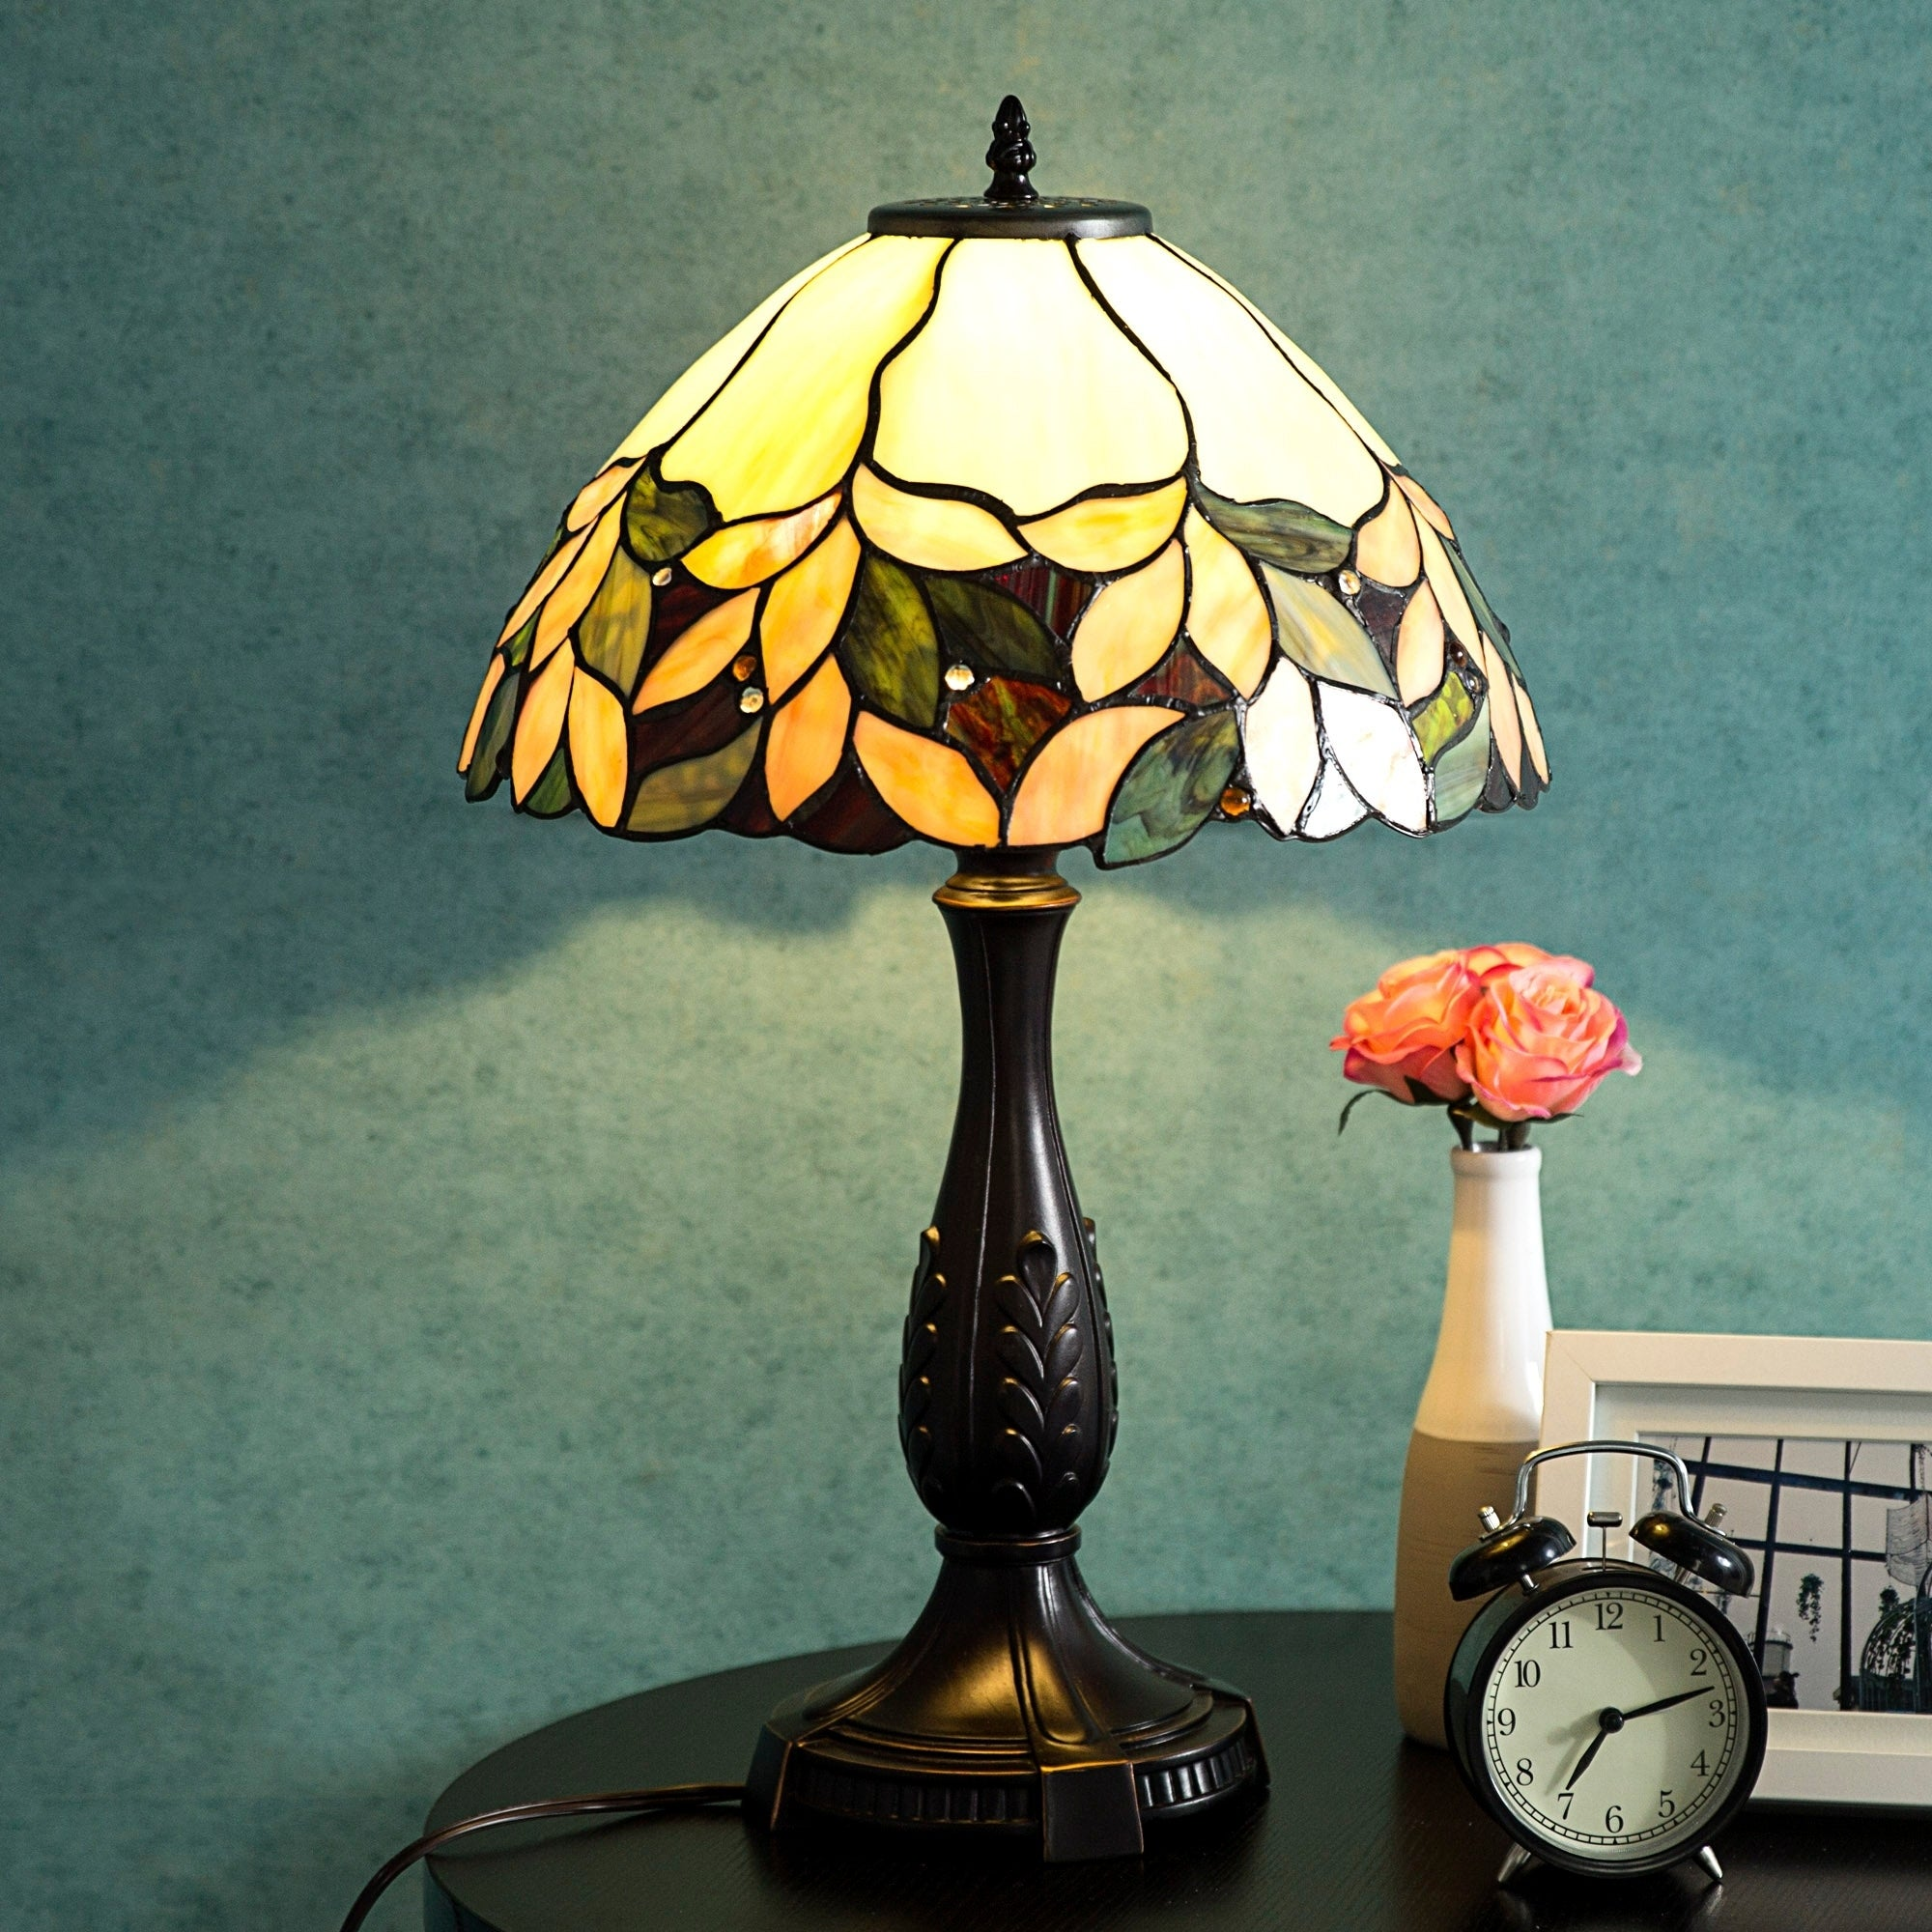 Tiffany Style 14 Lampshade Table Lamp Victorian Stained Glass Desk Lamp Floral Home Decor Lighting Overstock 20747520